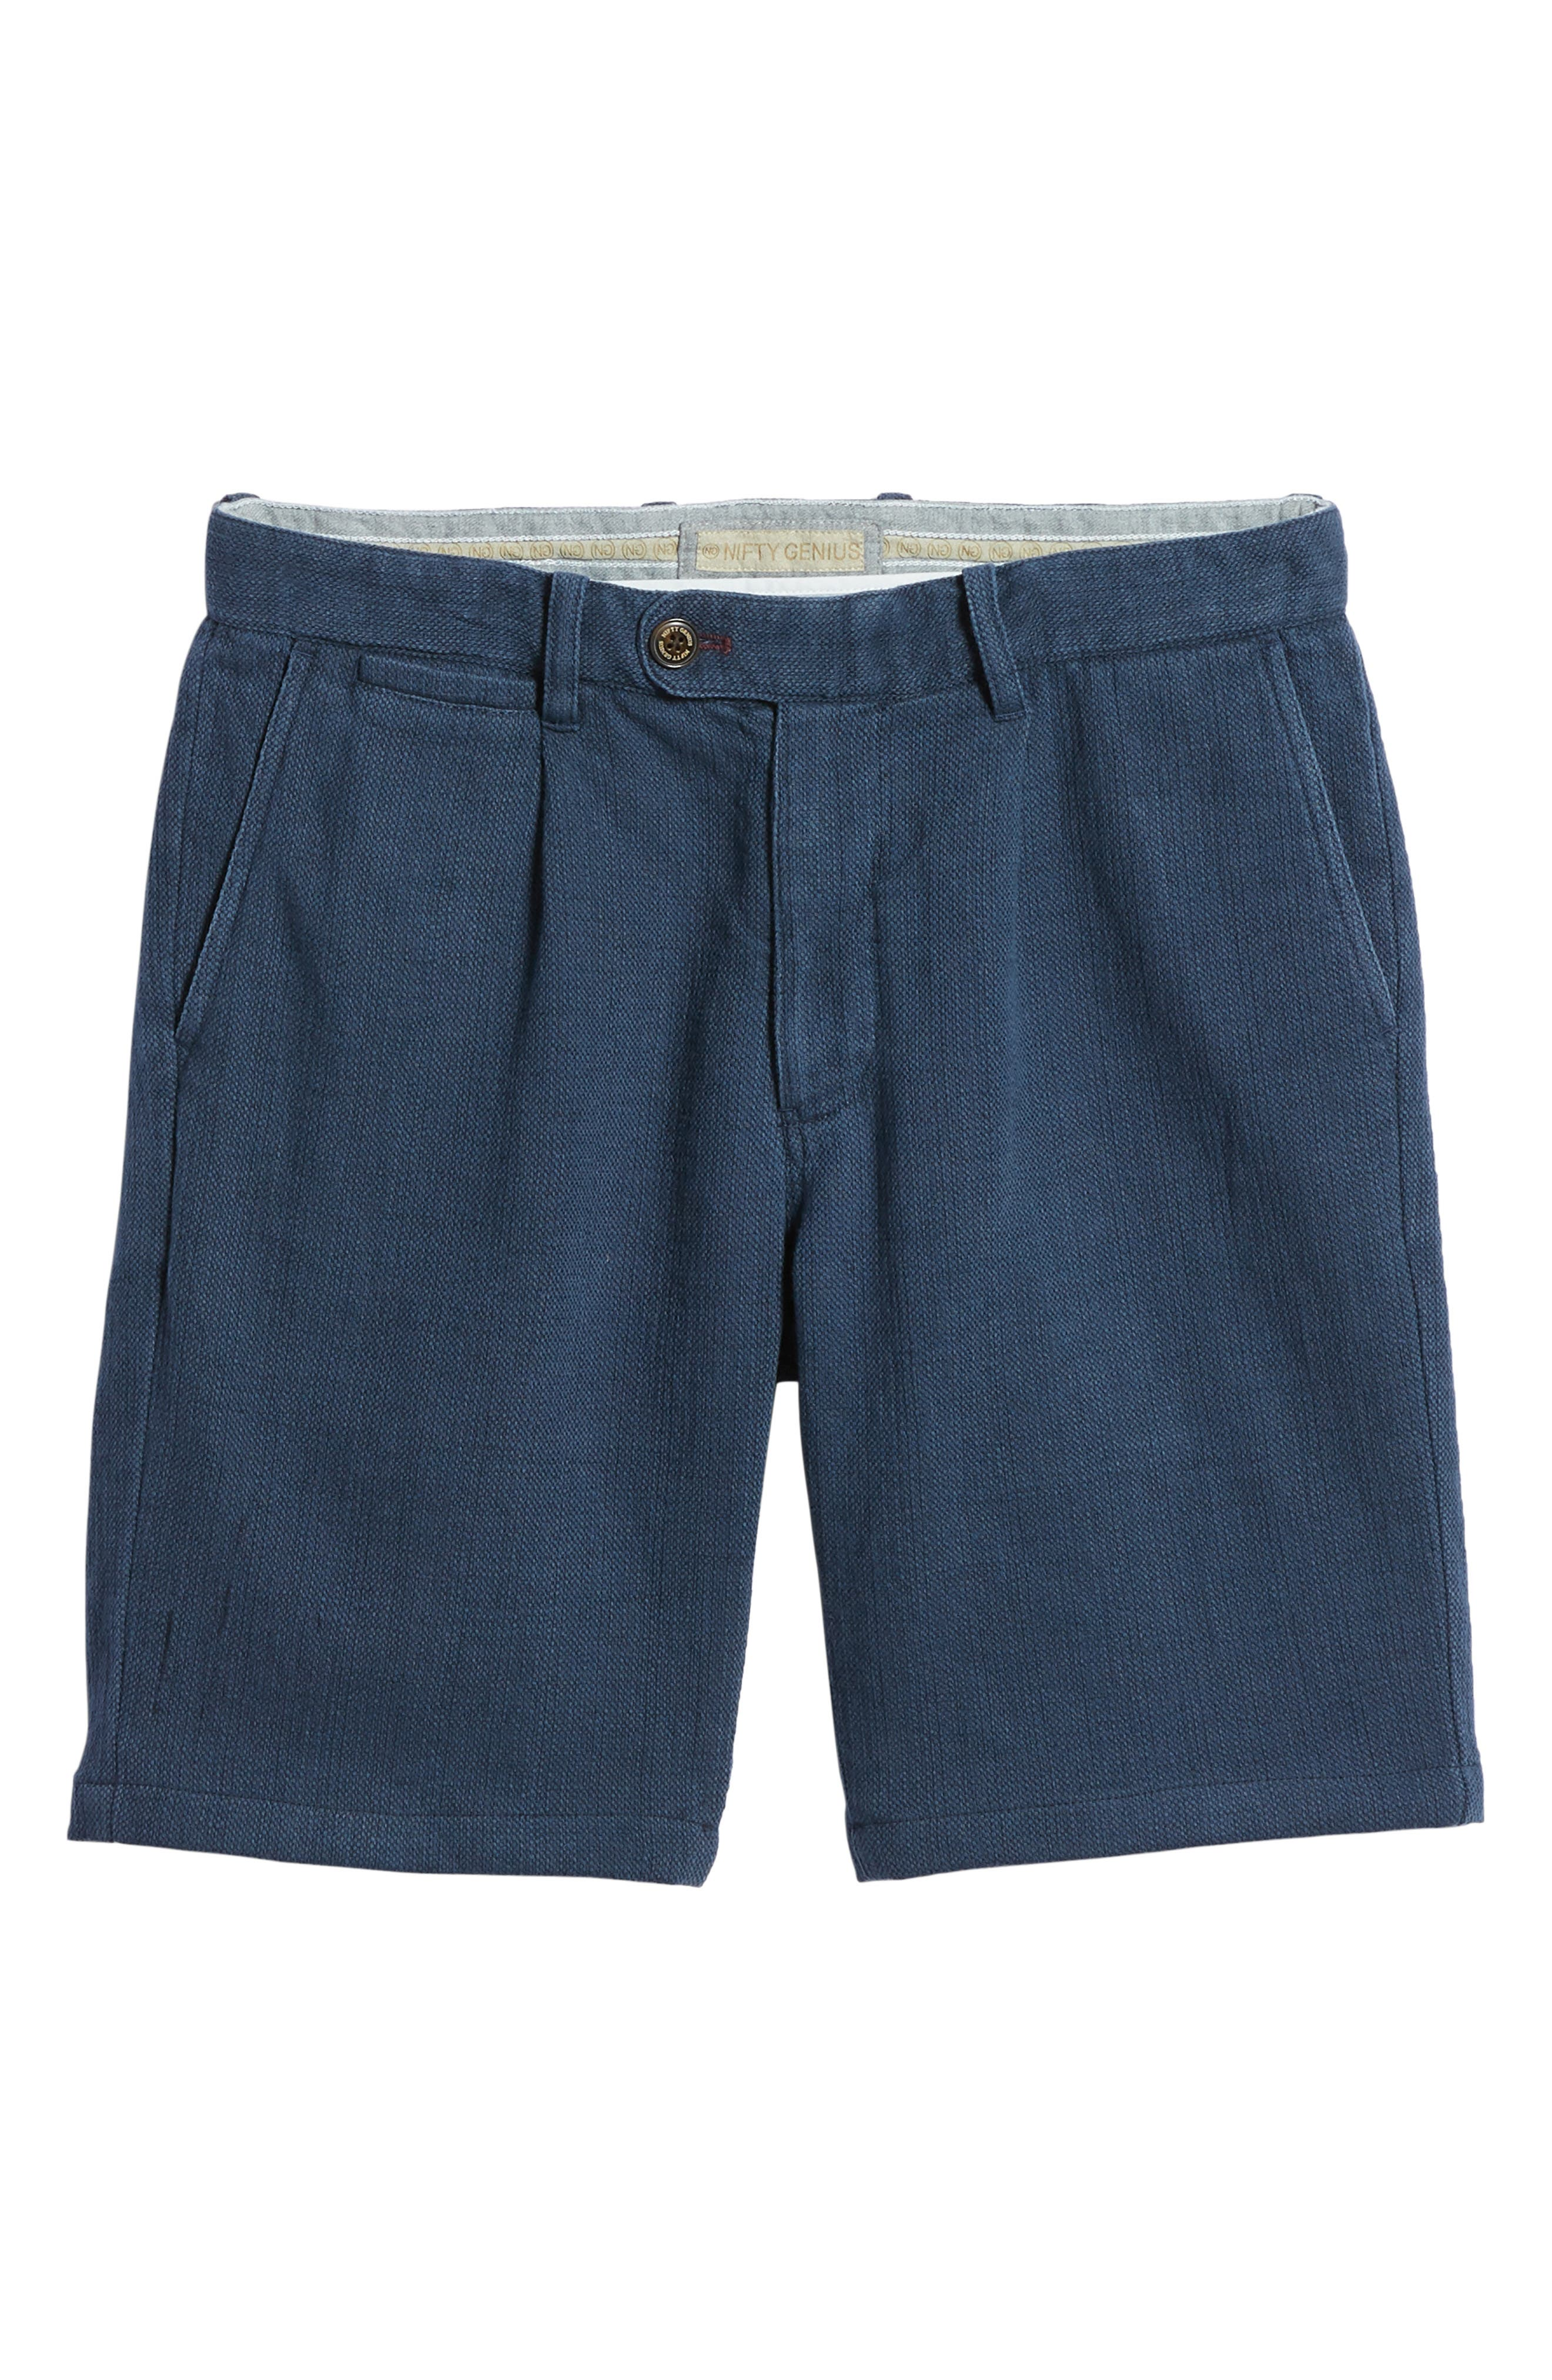 Thomas Regular Fit Pleated Shorts,                             Alternate thumbnail 6, color,                             Blue